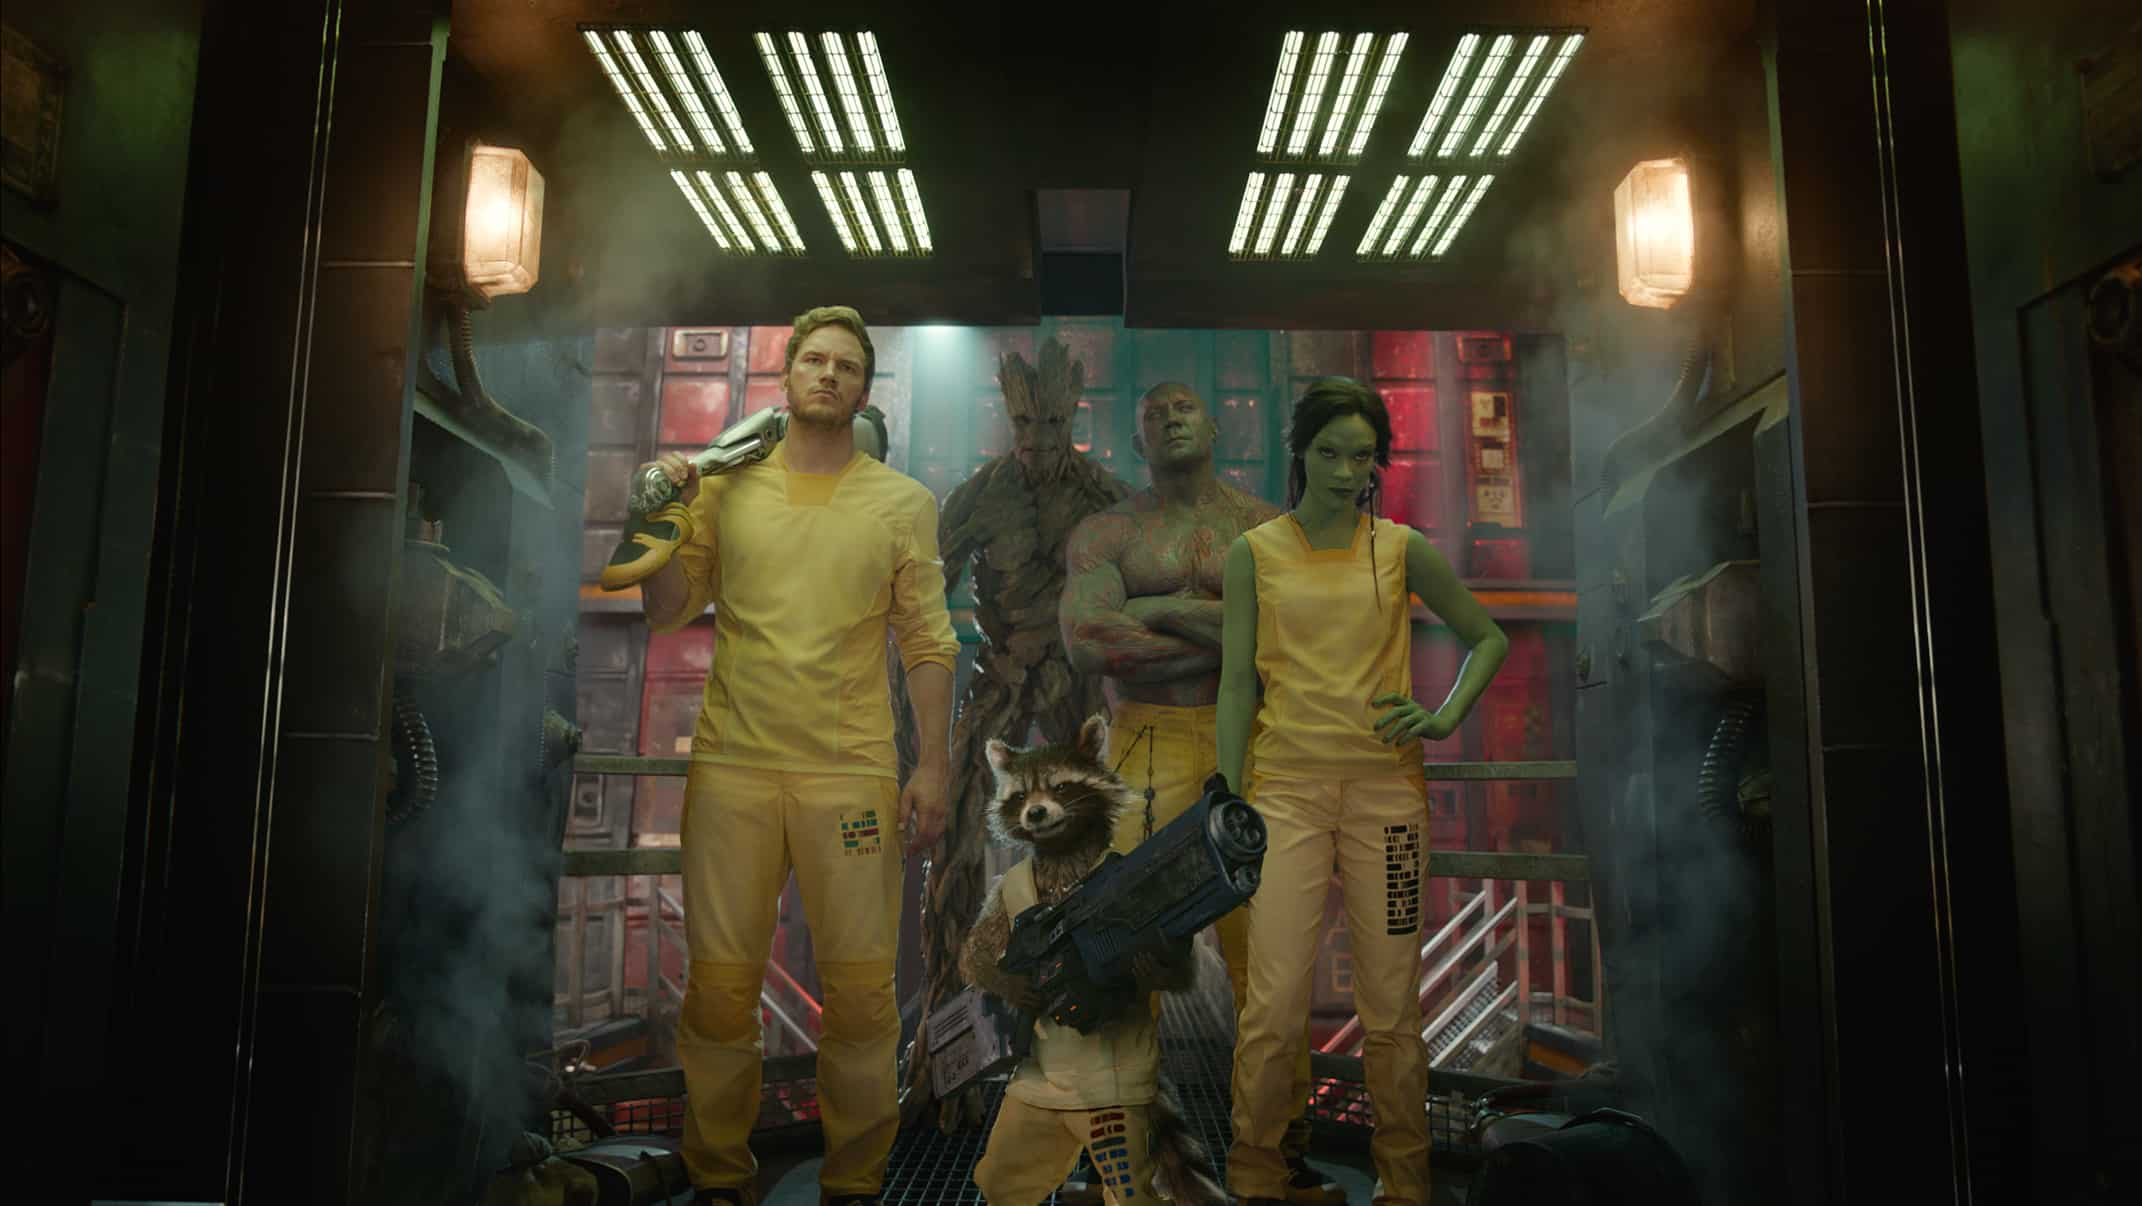 Marvel's 'Guardians Of The Galaxy' Director & Cast heading to Singapore on 12 July